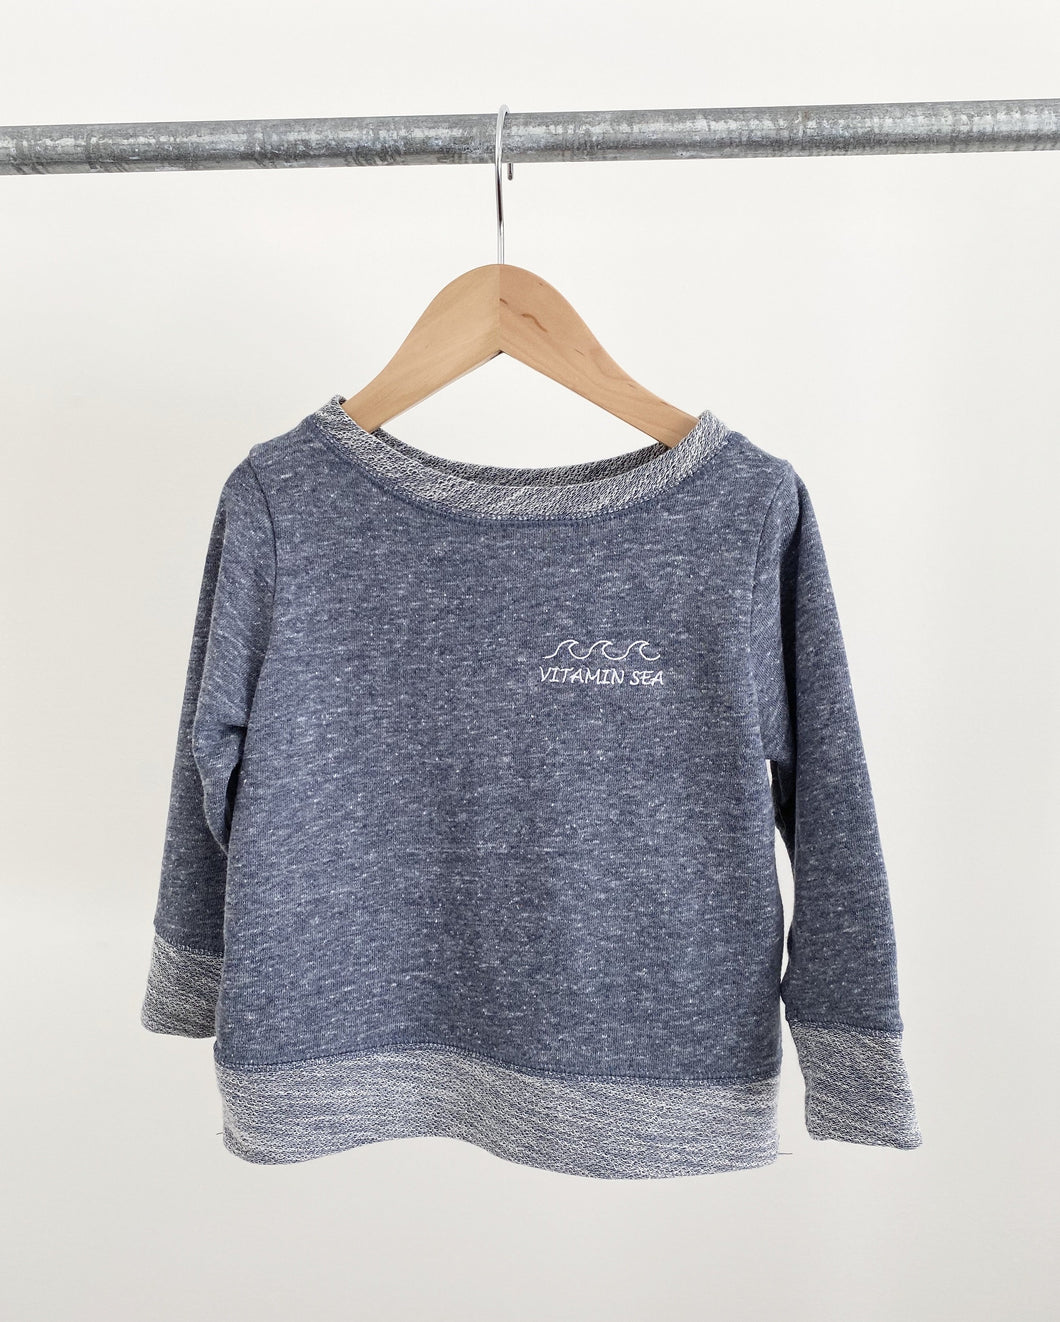 MM Vitamin Sea French Terry Sweatshirt